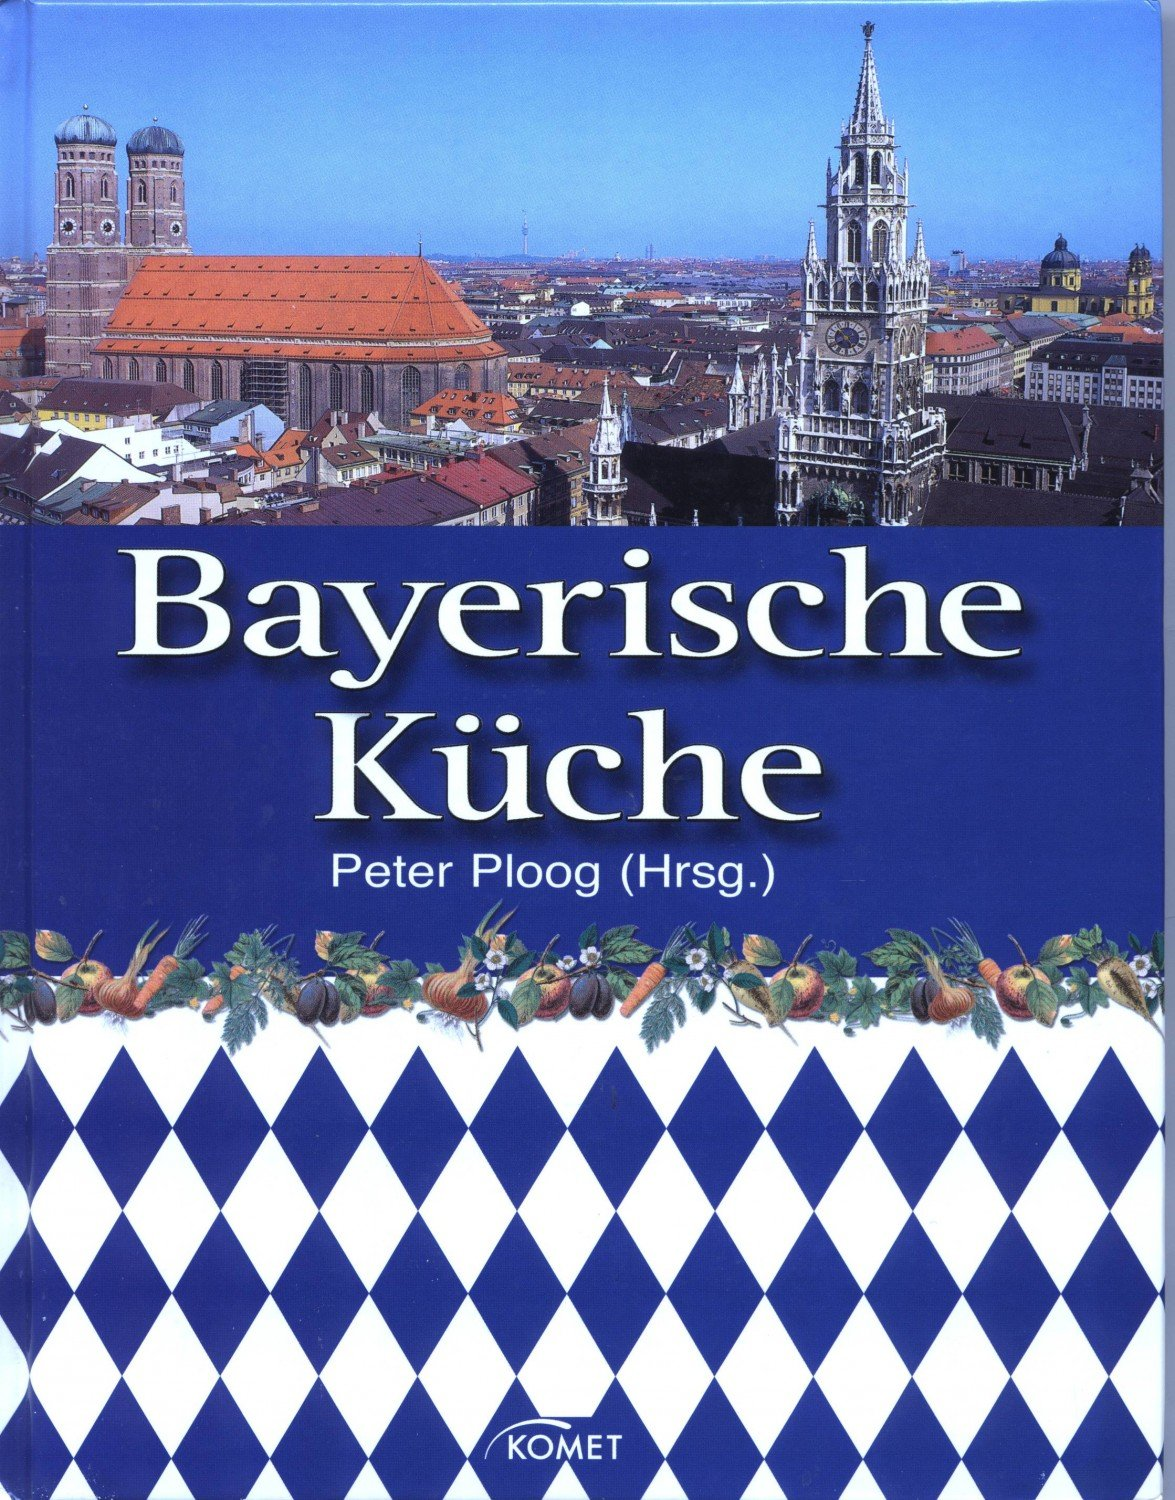 bayerische k che peter ploog buch gebraucht kaufen a026tnqu01zz1. Black Bedroom Furniture Sets. Home Design Ideas